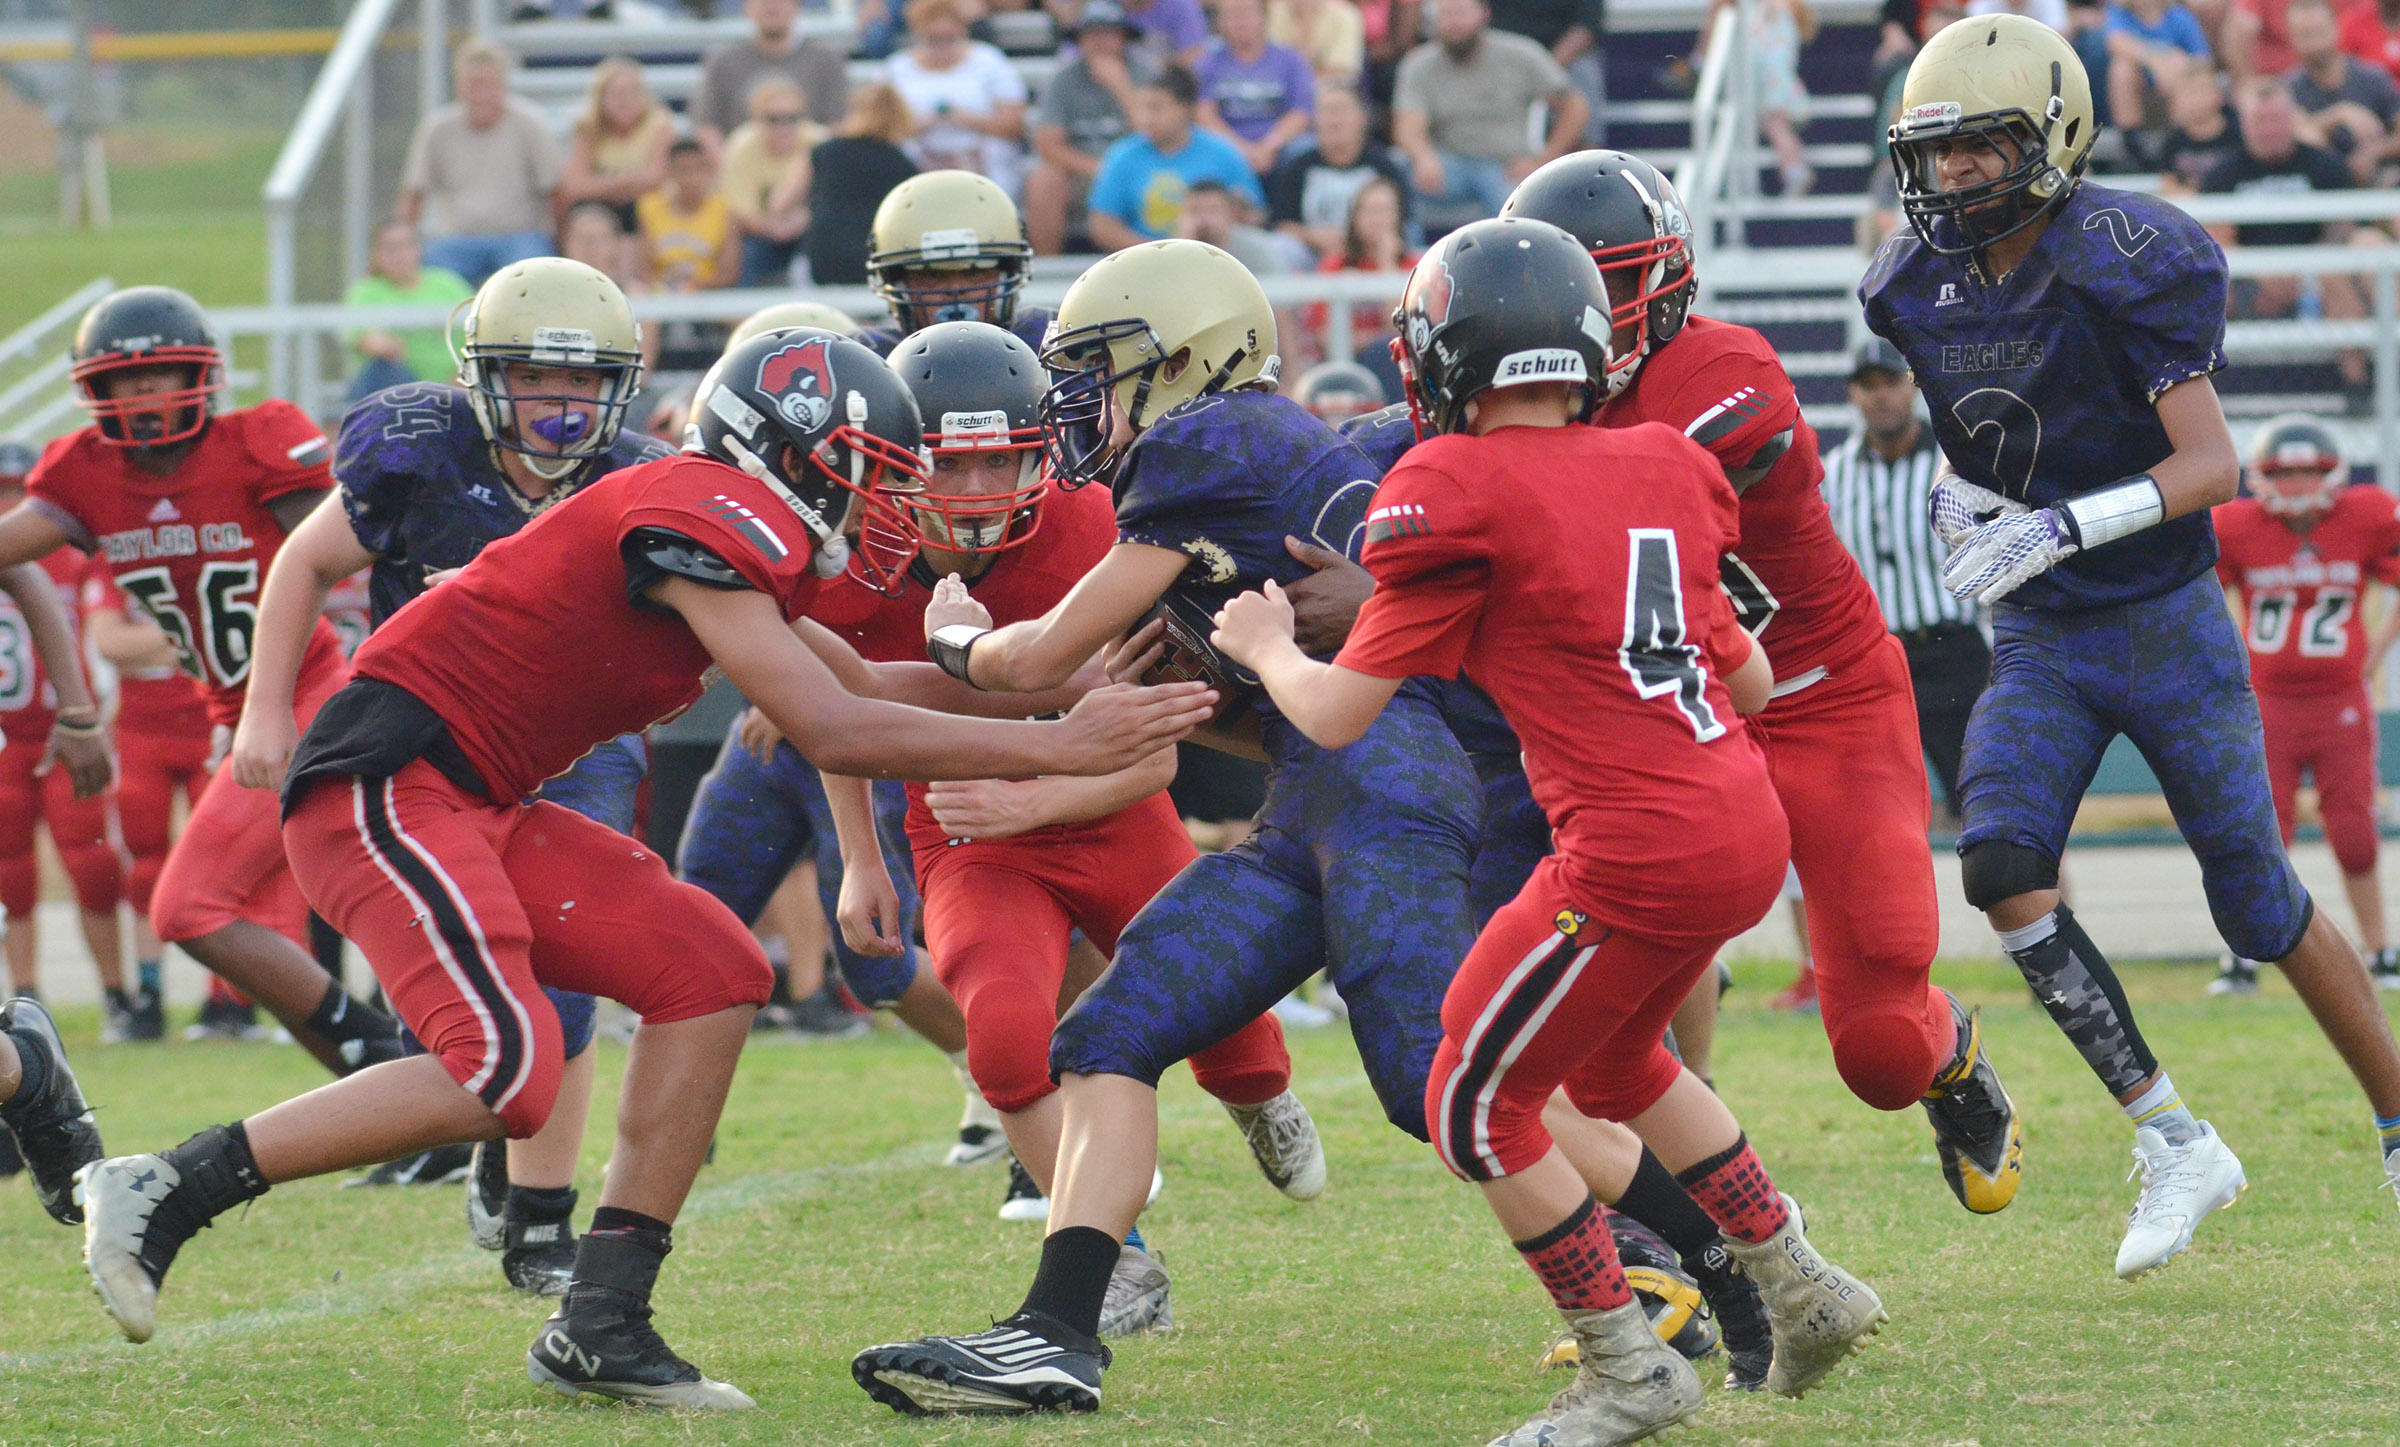 CMS seventh-grader Damon Johnson runs through Taylor County defenders.